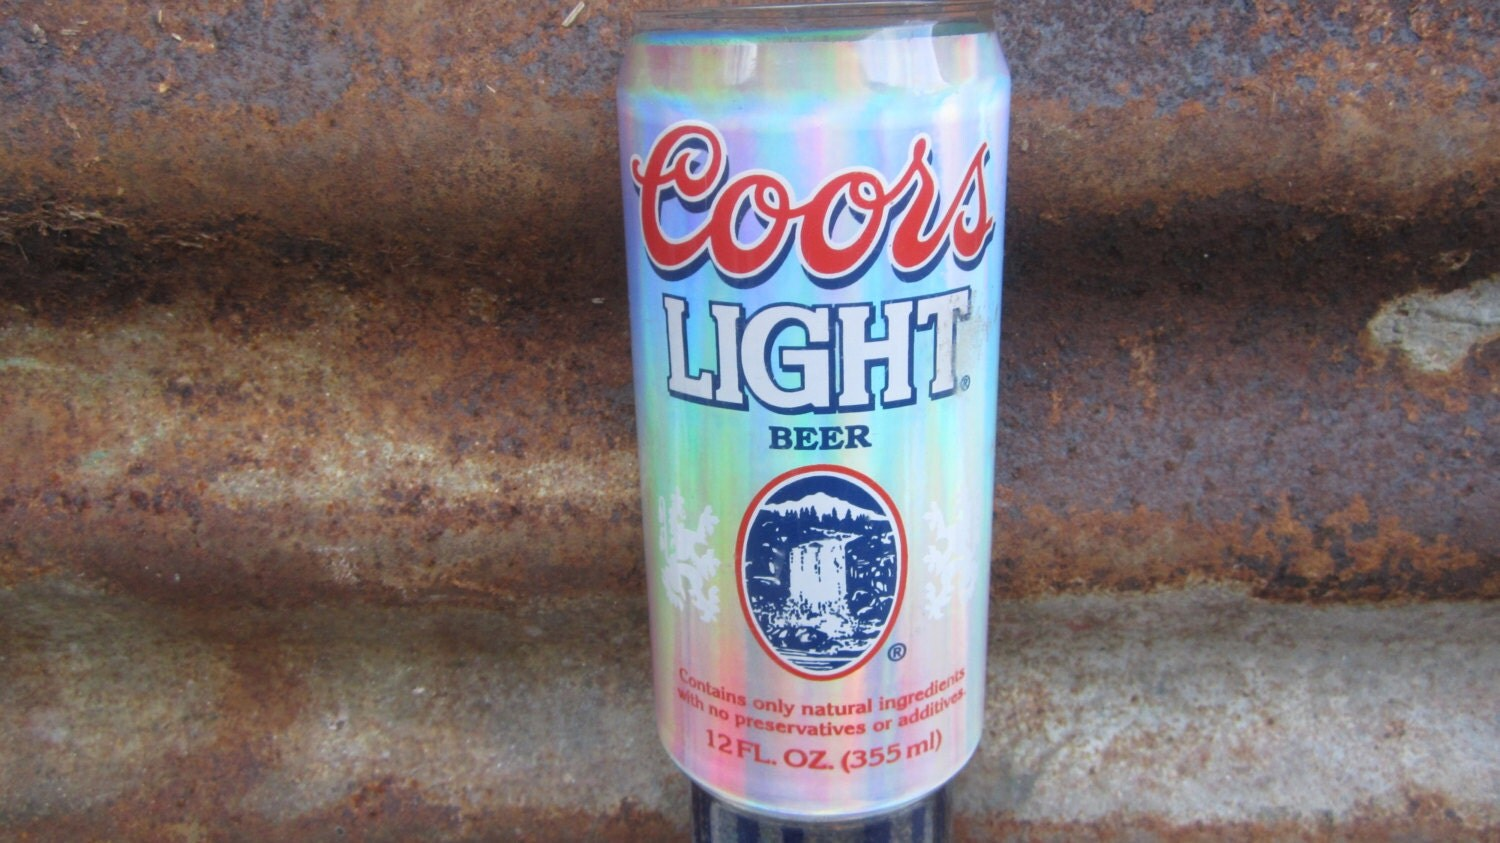 Vintage Beer Tap Coors Light With Glitter Iridescent Rainbow